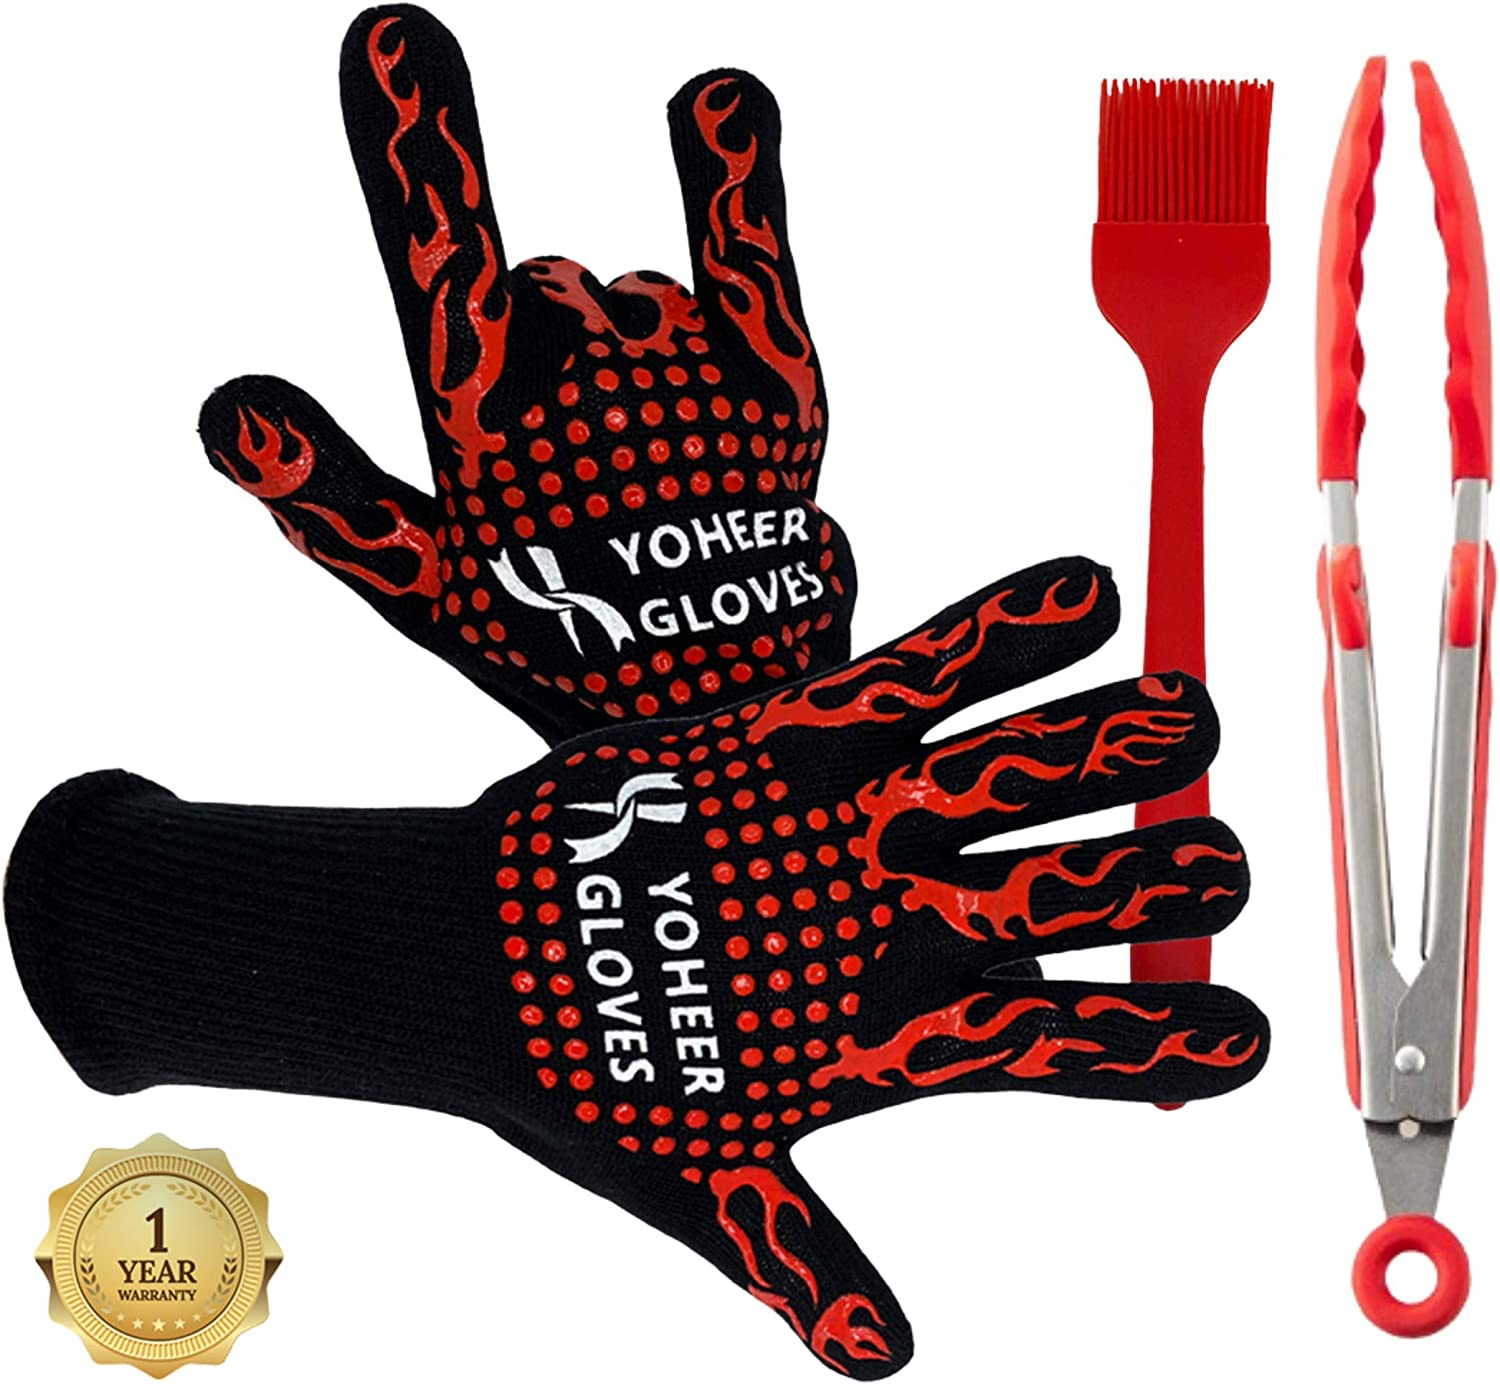 ENTIRE BBQ Grill Gloves Extreme Heat Resistant, Insulated, Fireproof Oven Mitts. Made of Aramid and Silicone for Cooking, Grilling, Baking, Barbecue and More - Bonus Silicone Brush & BBQ Grilling Tong